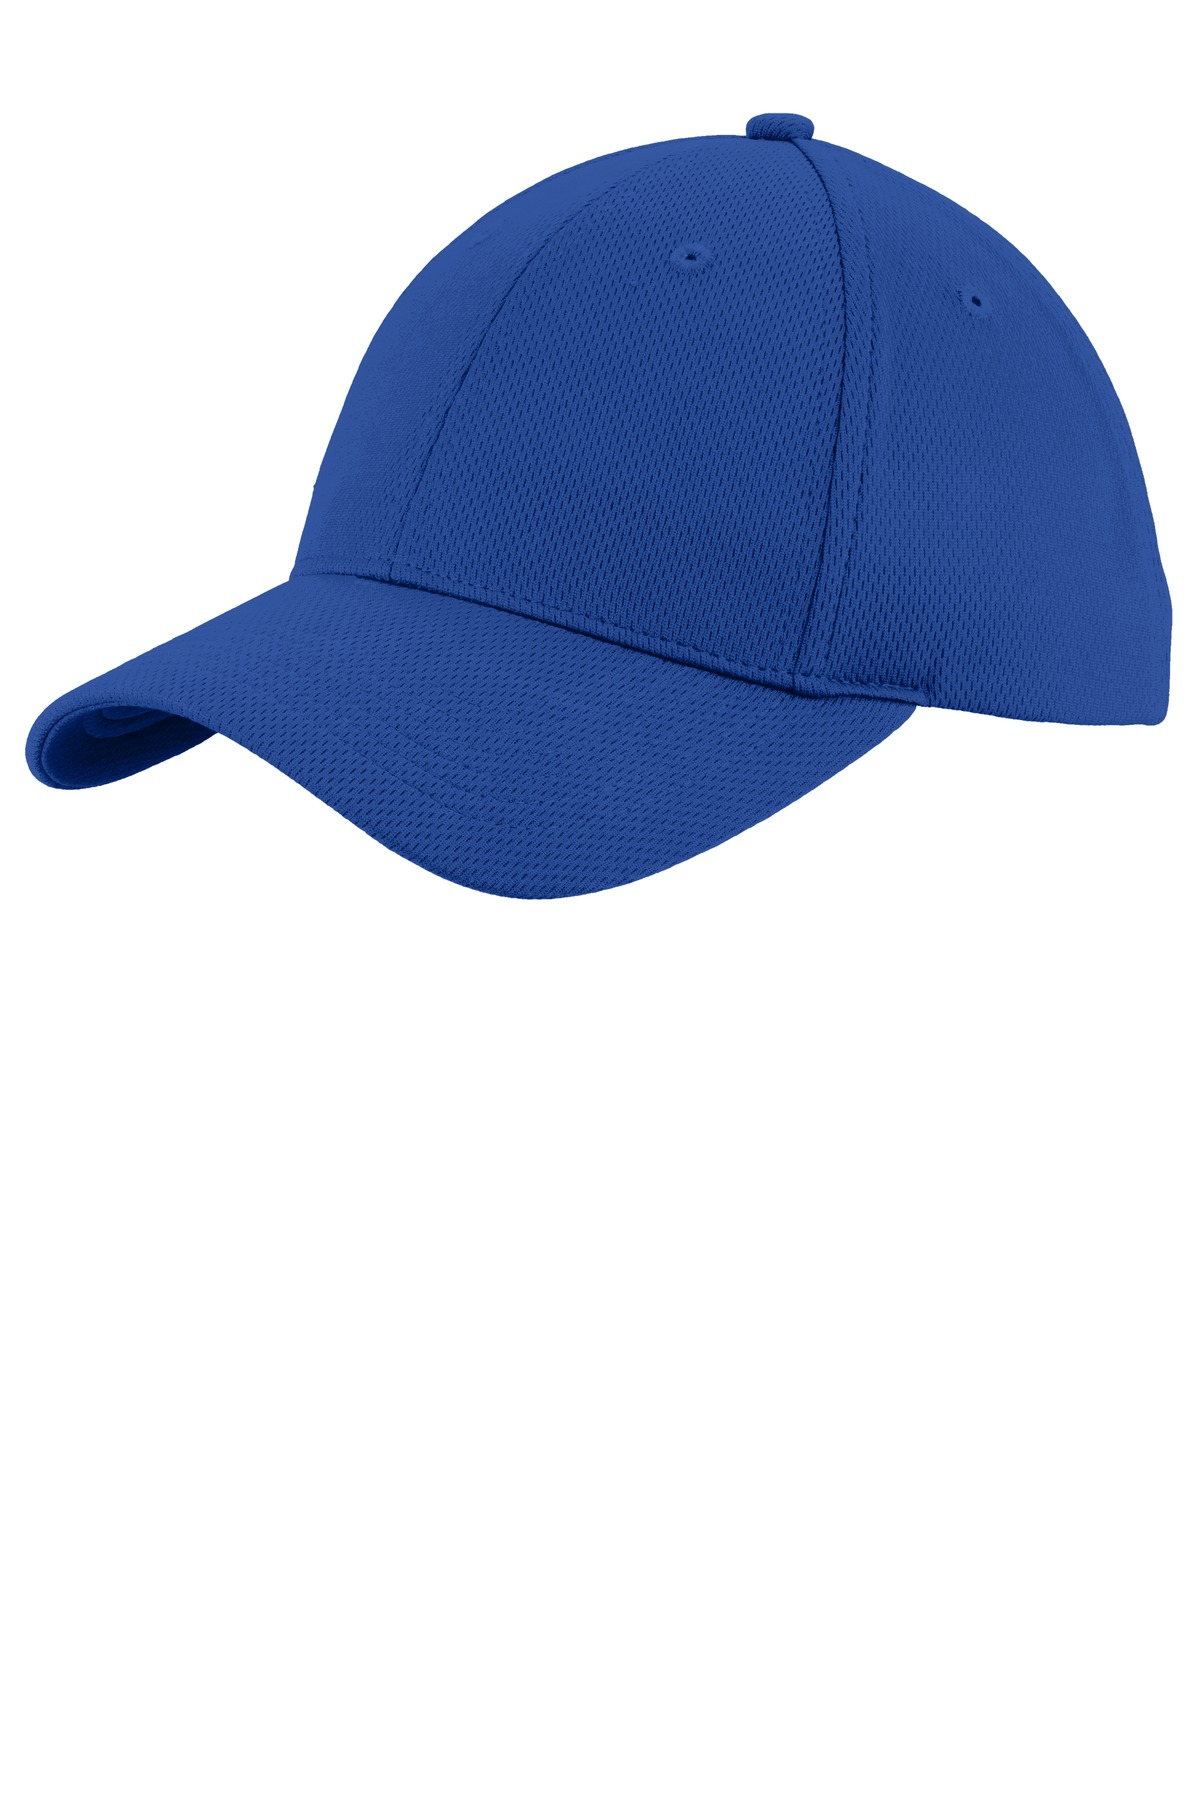 Sport-Tek ®  PosiCharge ®  RacerMesh ®  Cap. STC26 - True Royal